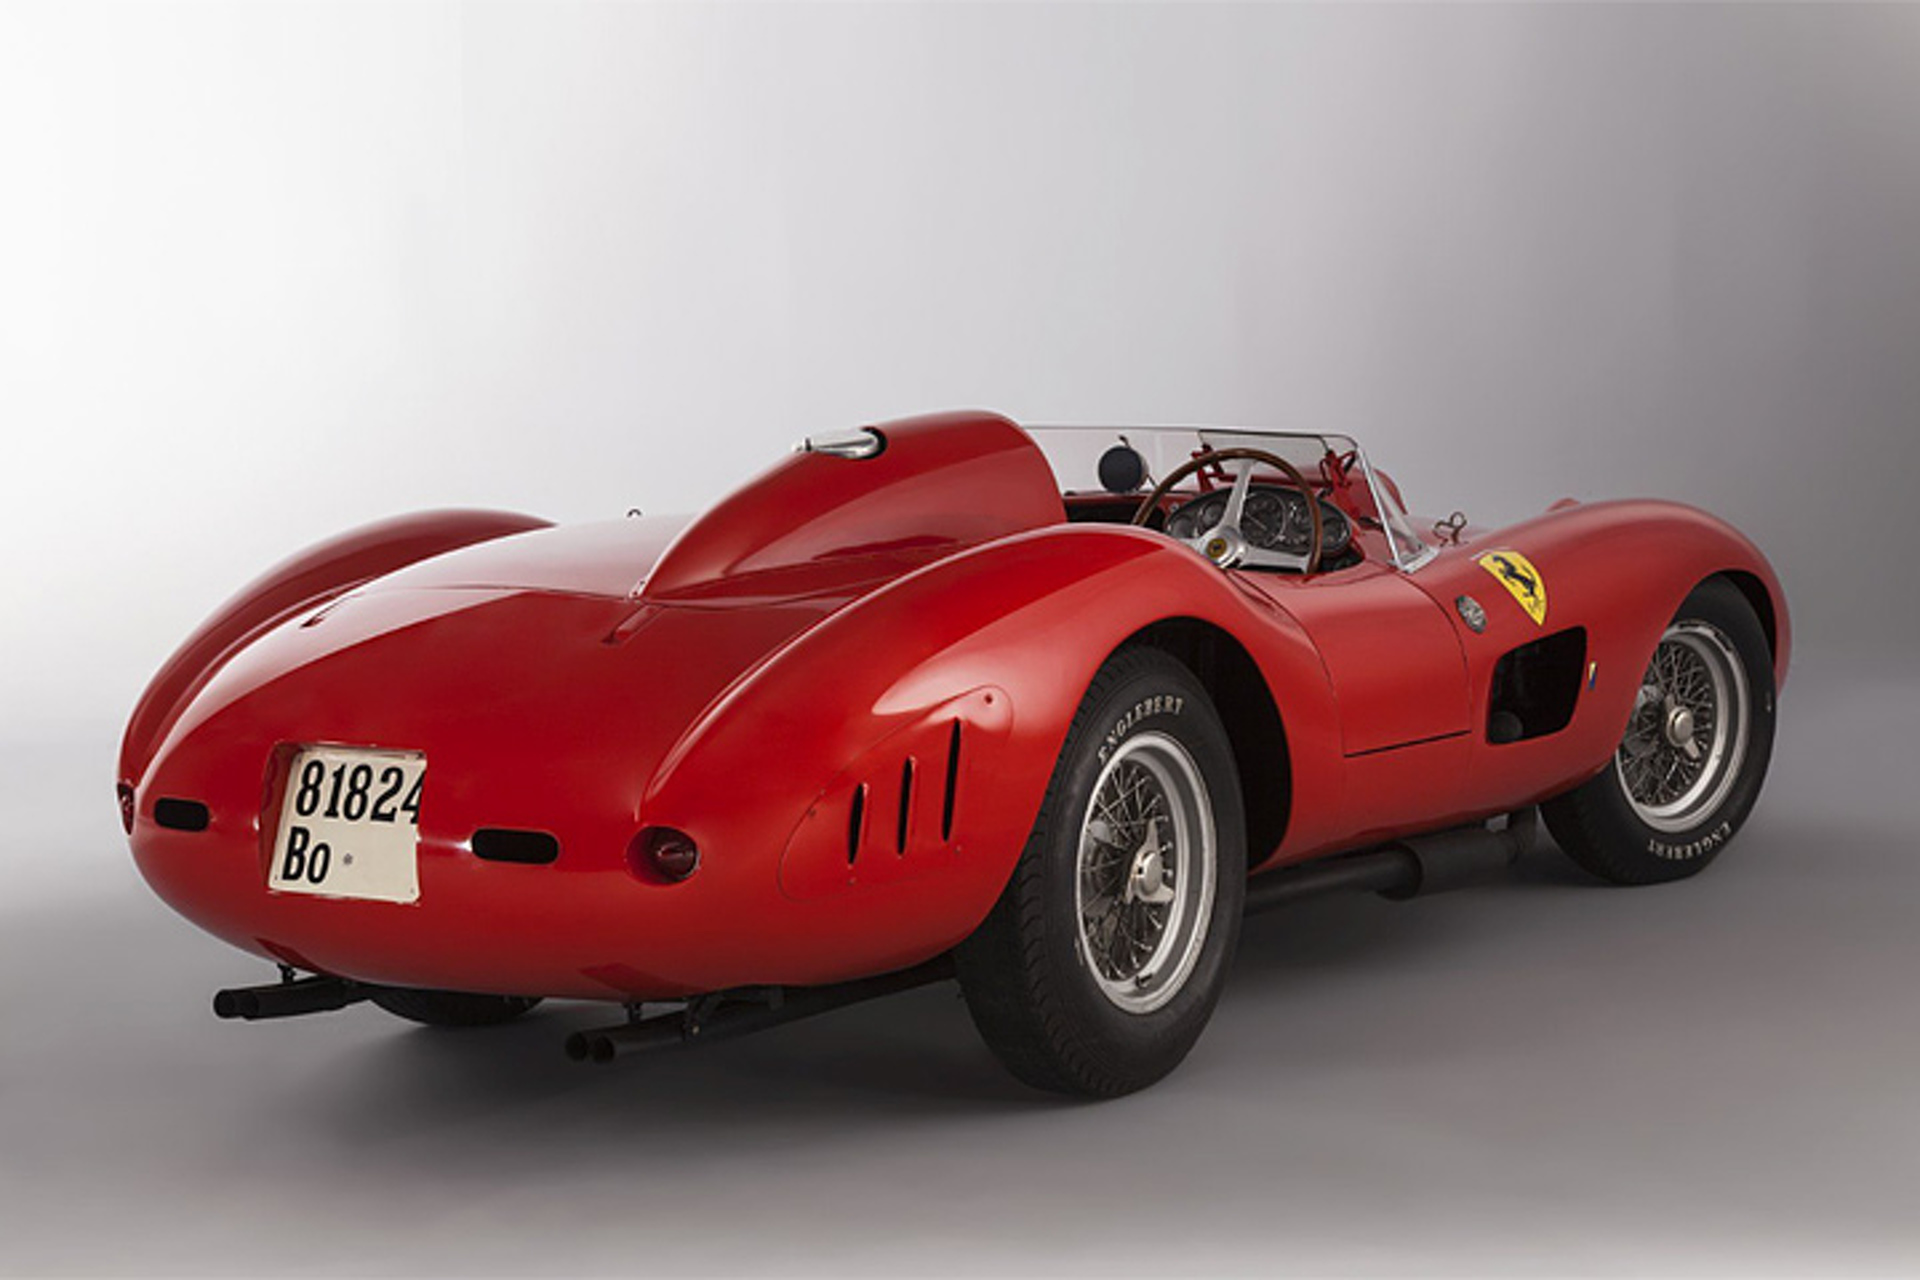 Ferrari 335 S Goes for $36.2 Million at Auction, Becomes World's Most Expensive Car